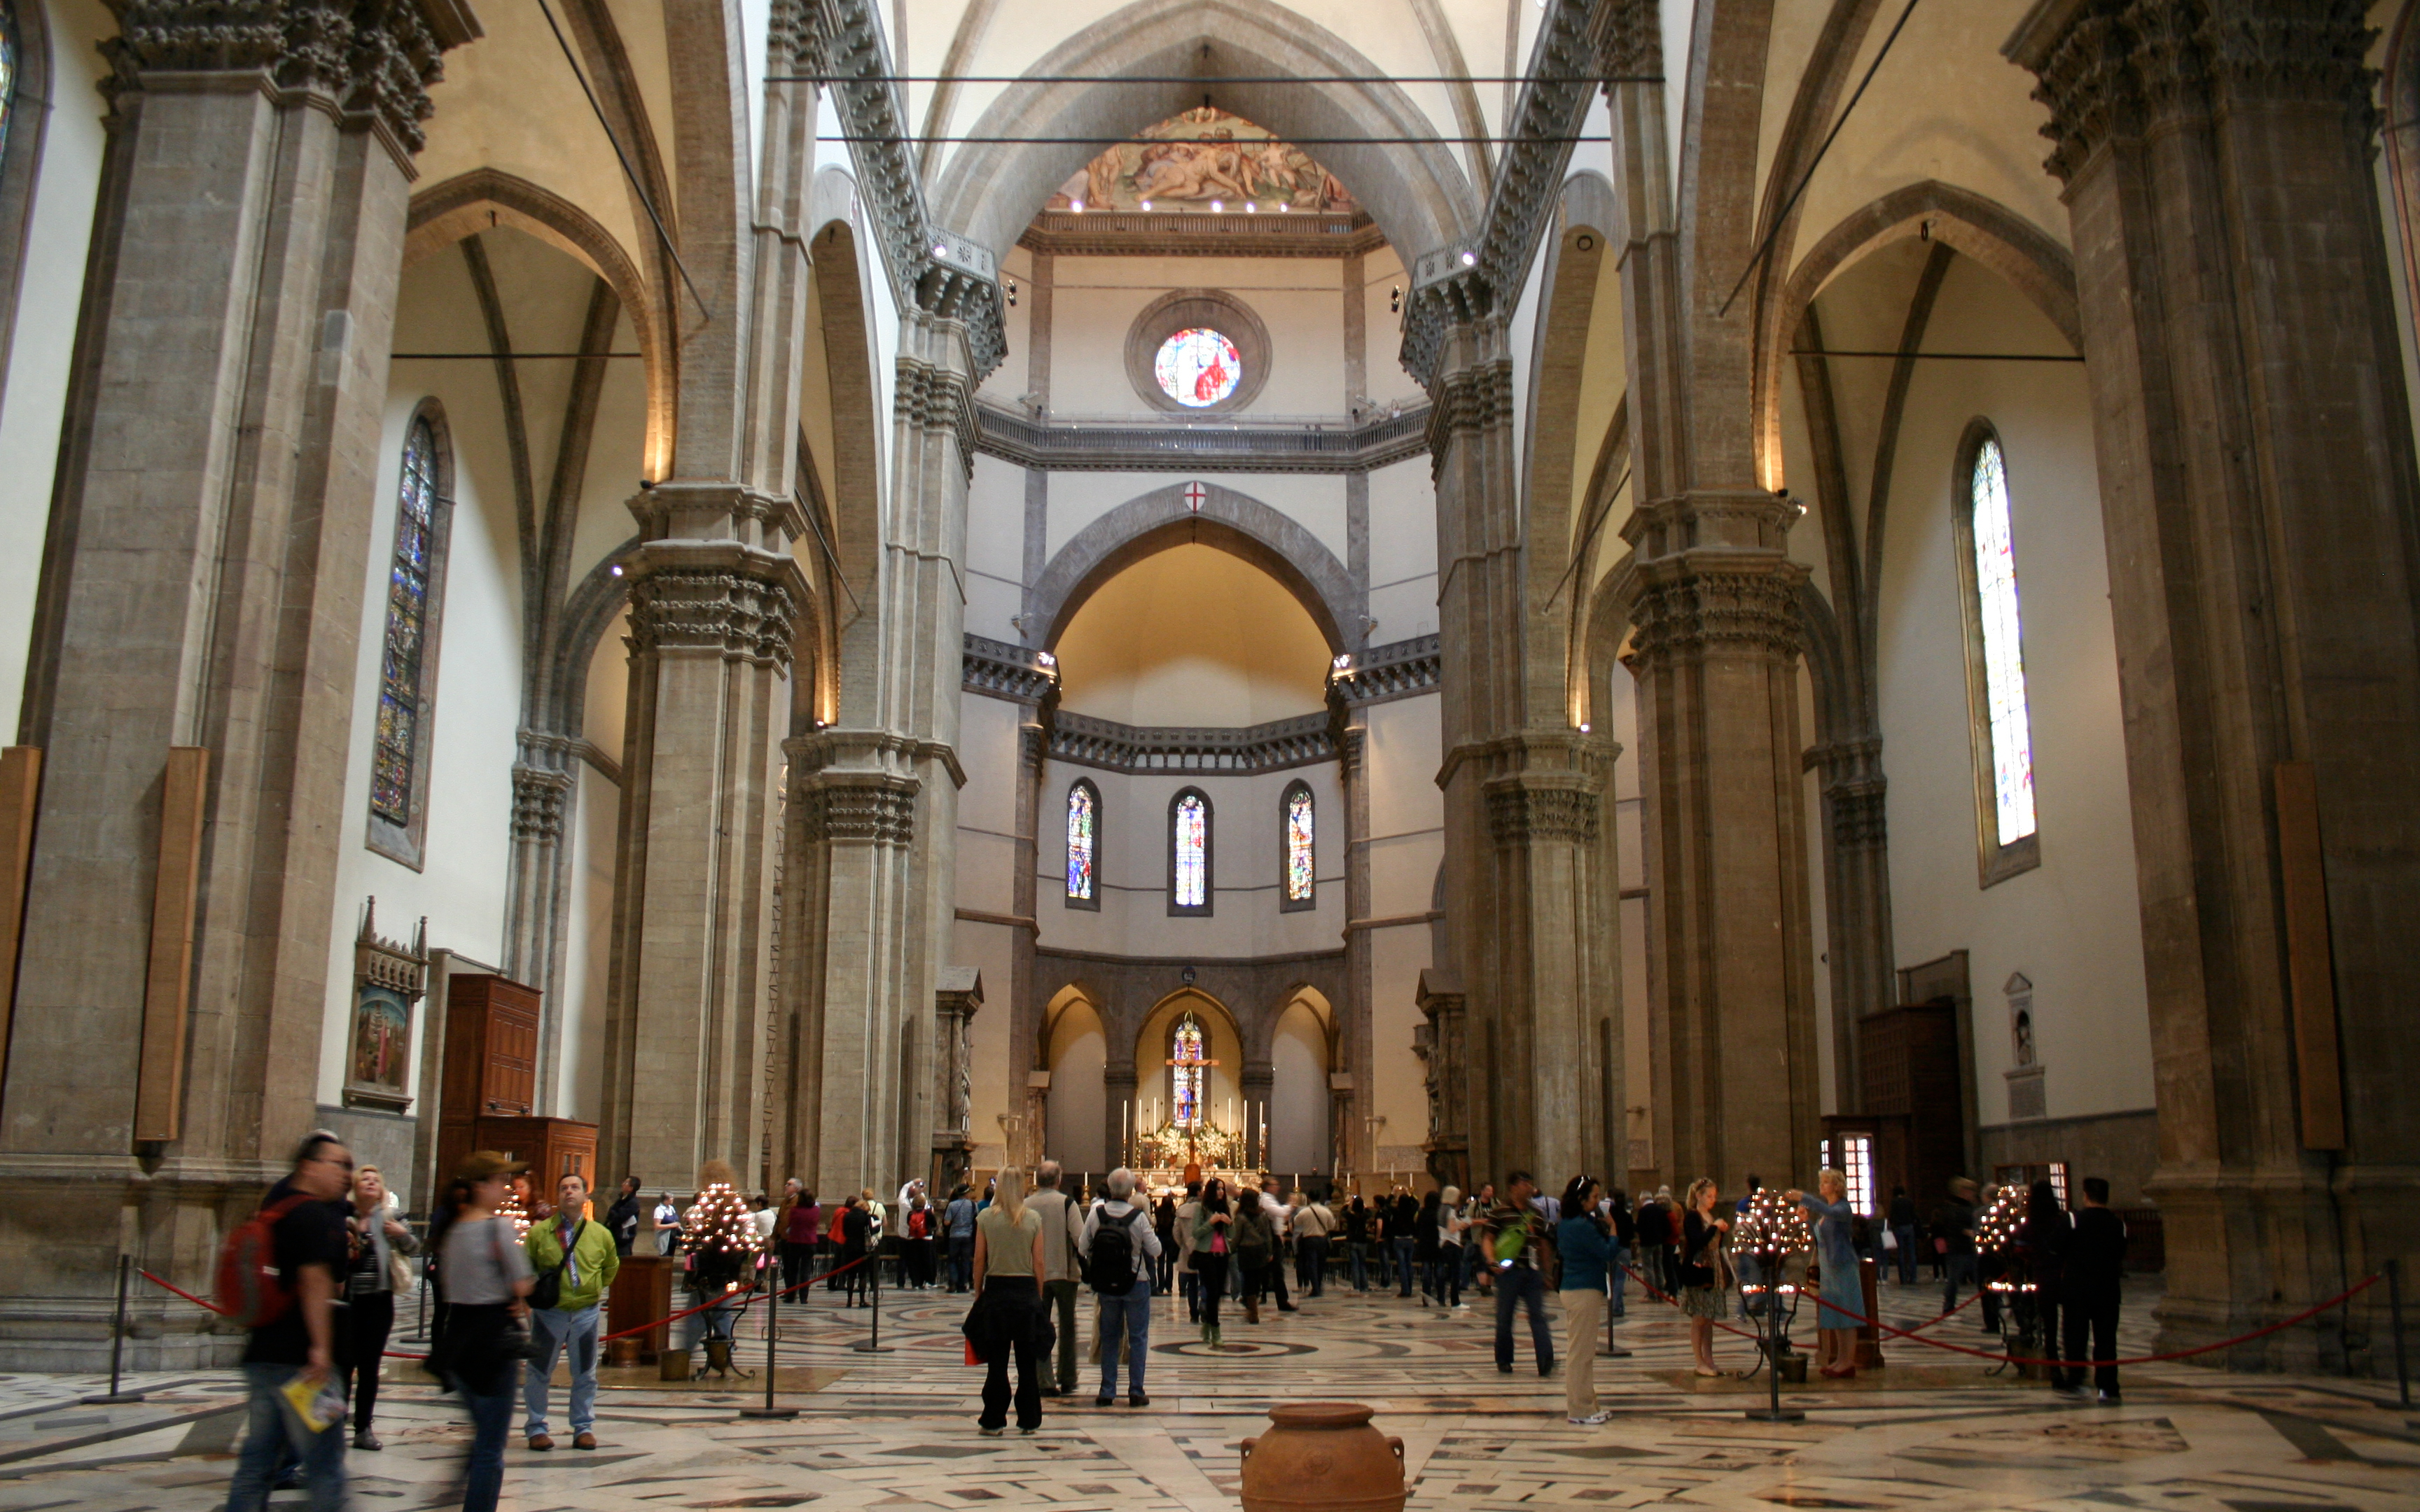 3ac1fa5a 9b0b 409c af23 e25e533f8062 7627 florence exclusive tour of florence s duomo and secret terraces 02